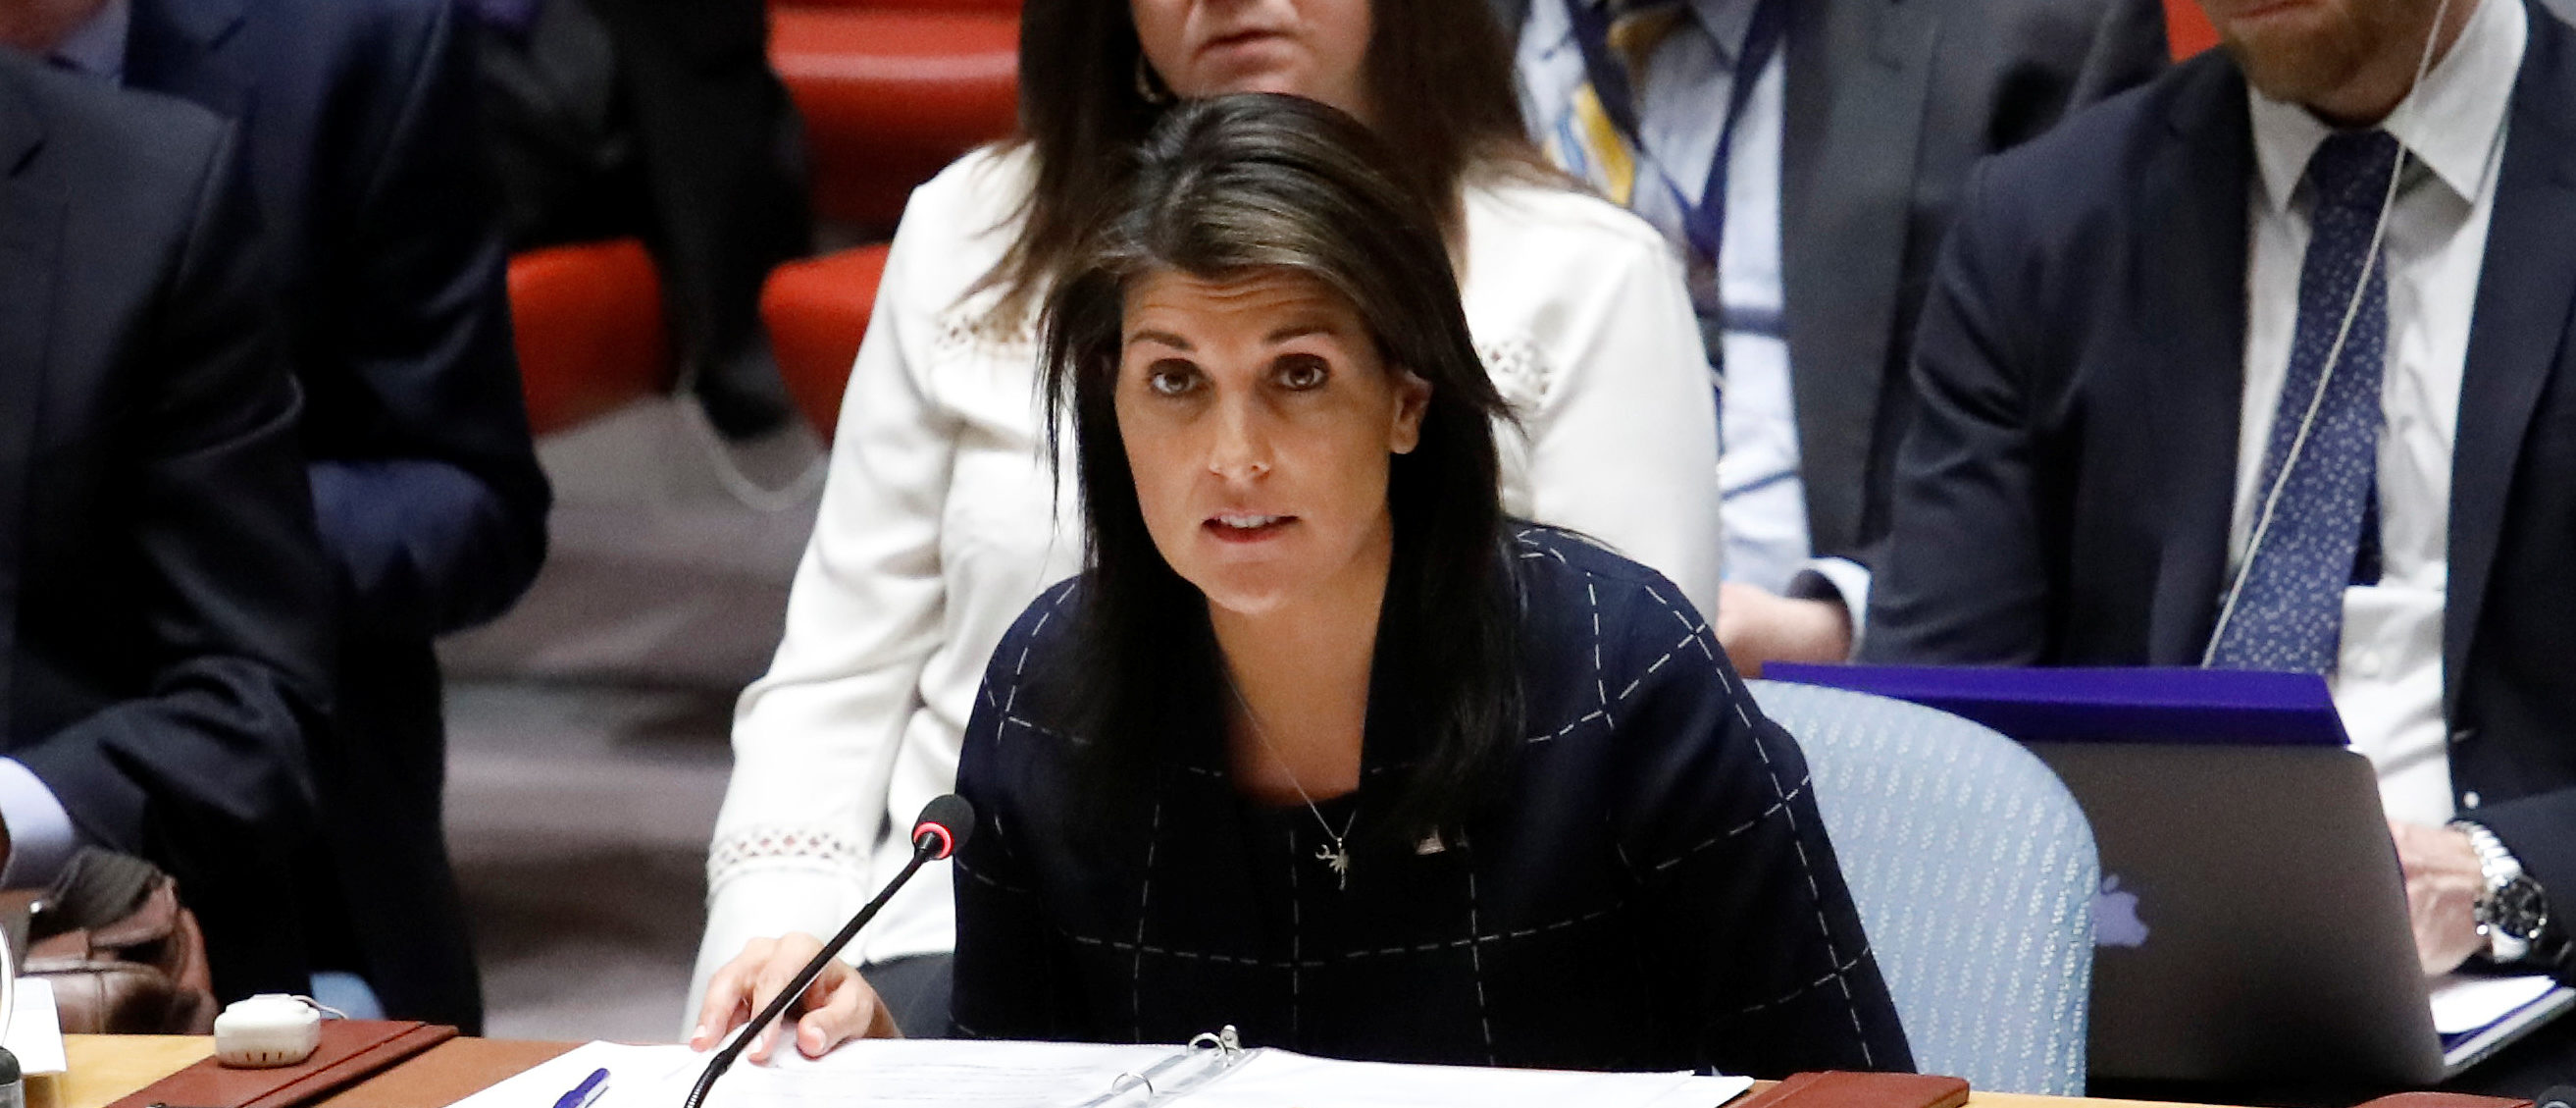 United States Ambassador to the United Nations Nikki Haley speaks during a United Nations Security Council meeting on the Crisis in the Middle East at the UN headquarters in New York, April 17, 2018. REUTERS/Shannon Stapleton